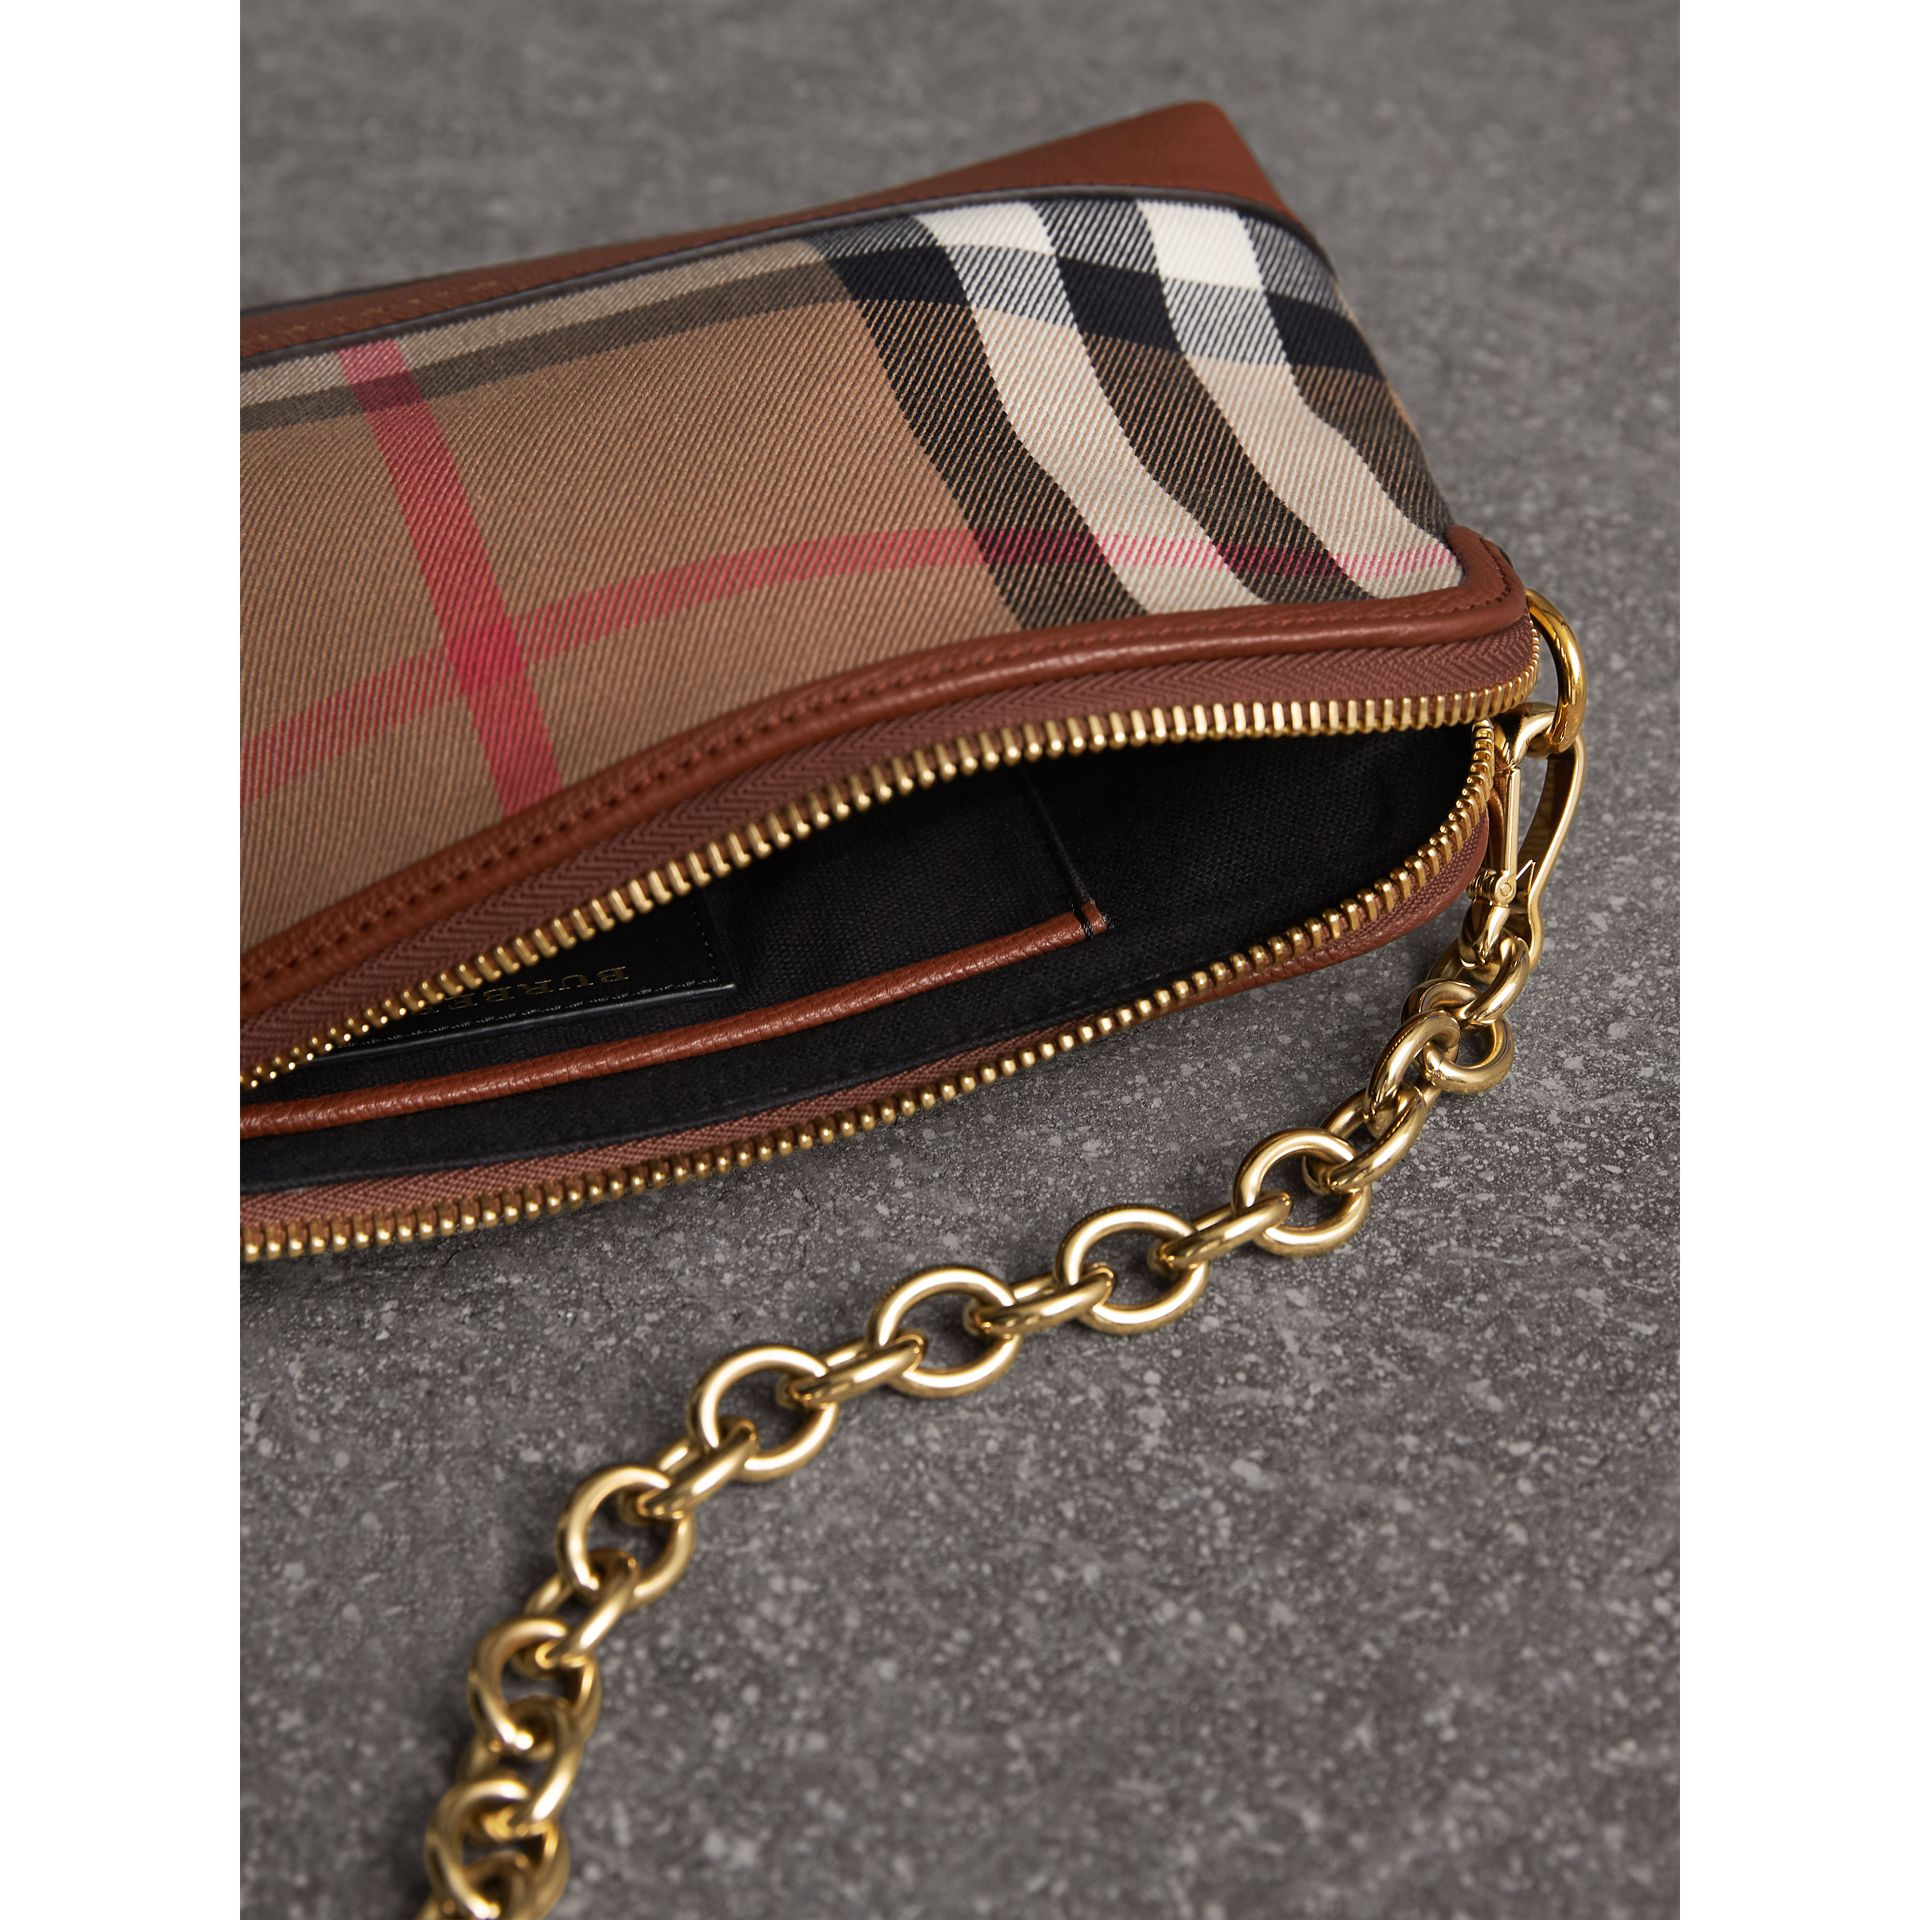 House Check and Leather Clutch Bag in Tan - Women | Burberry Canada - gallery image 6